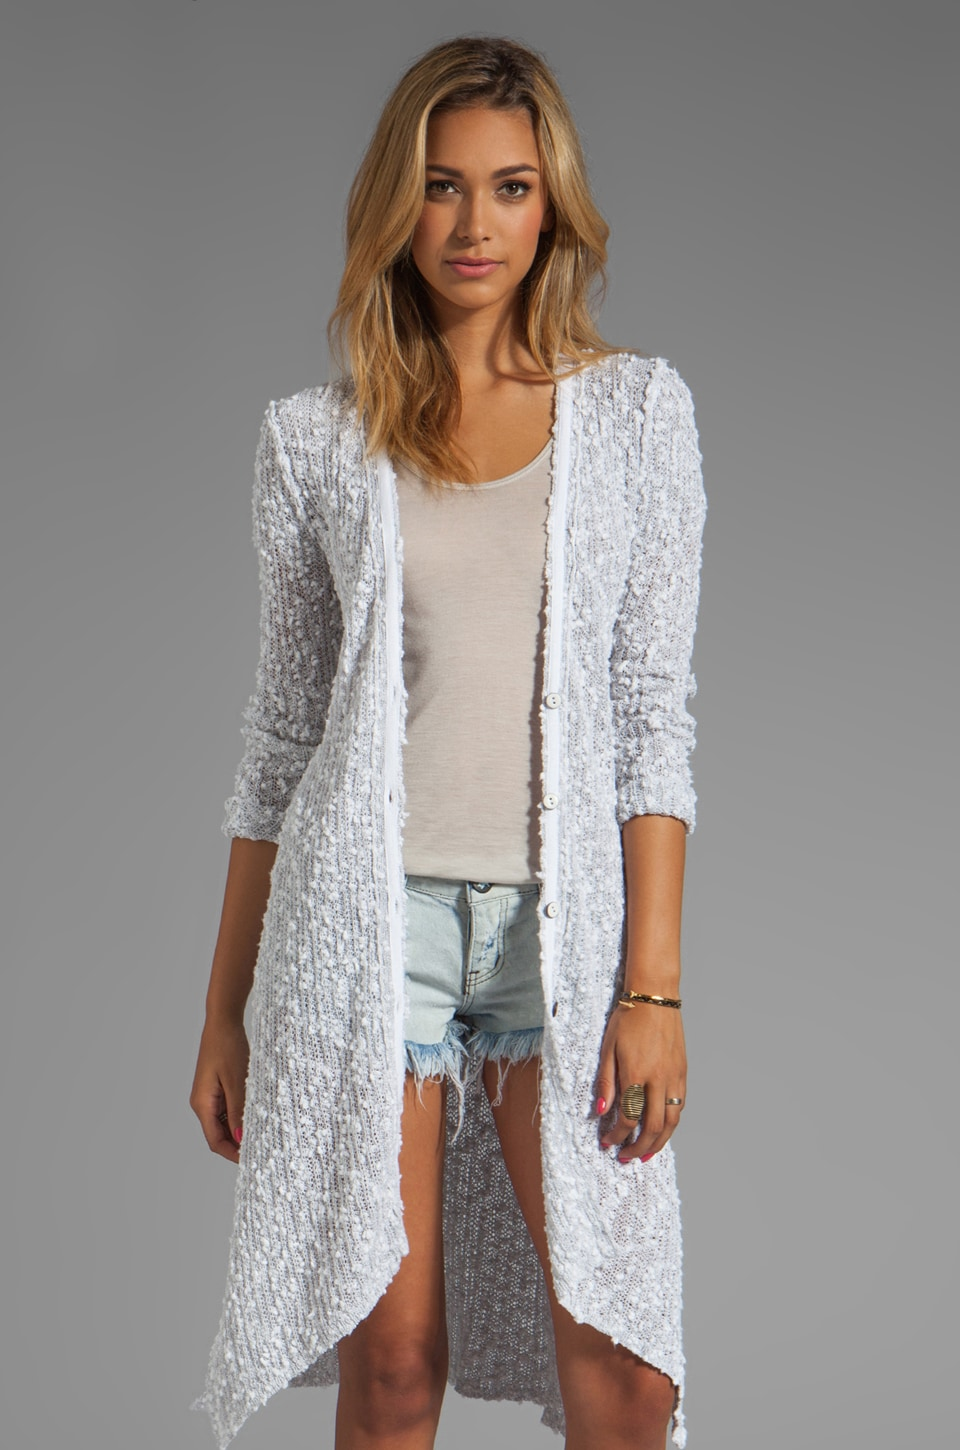 Free People Boxer Cardi in White